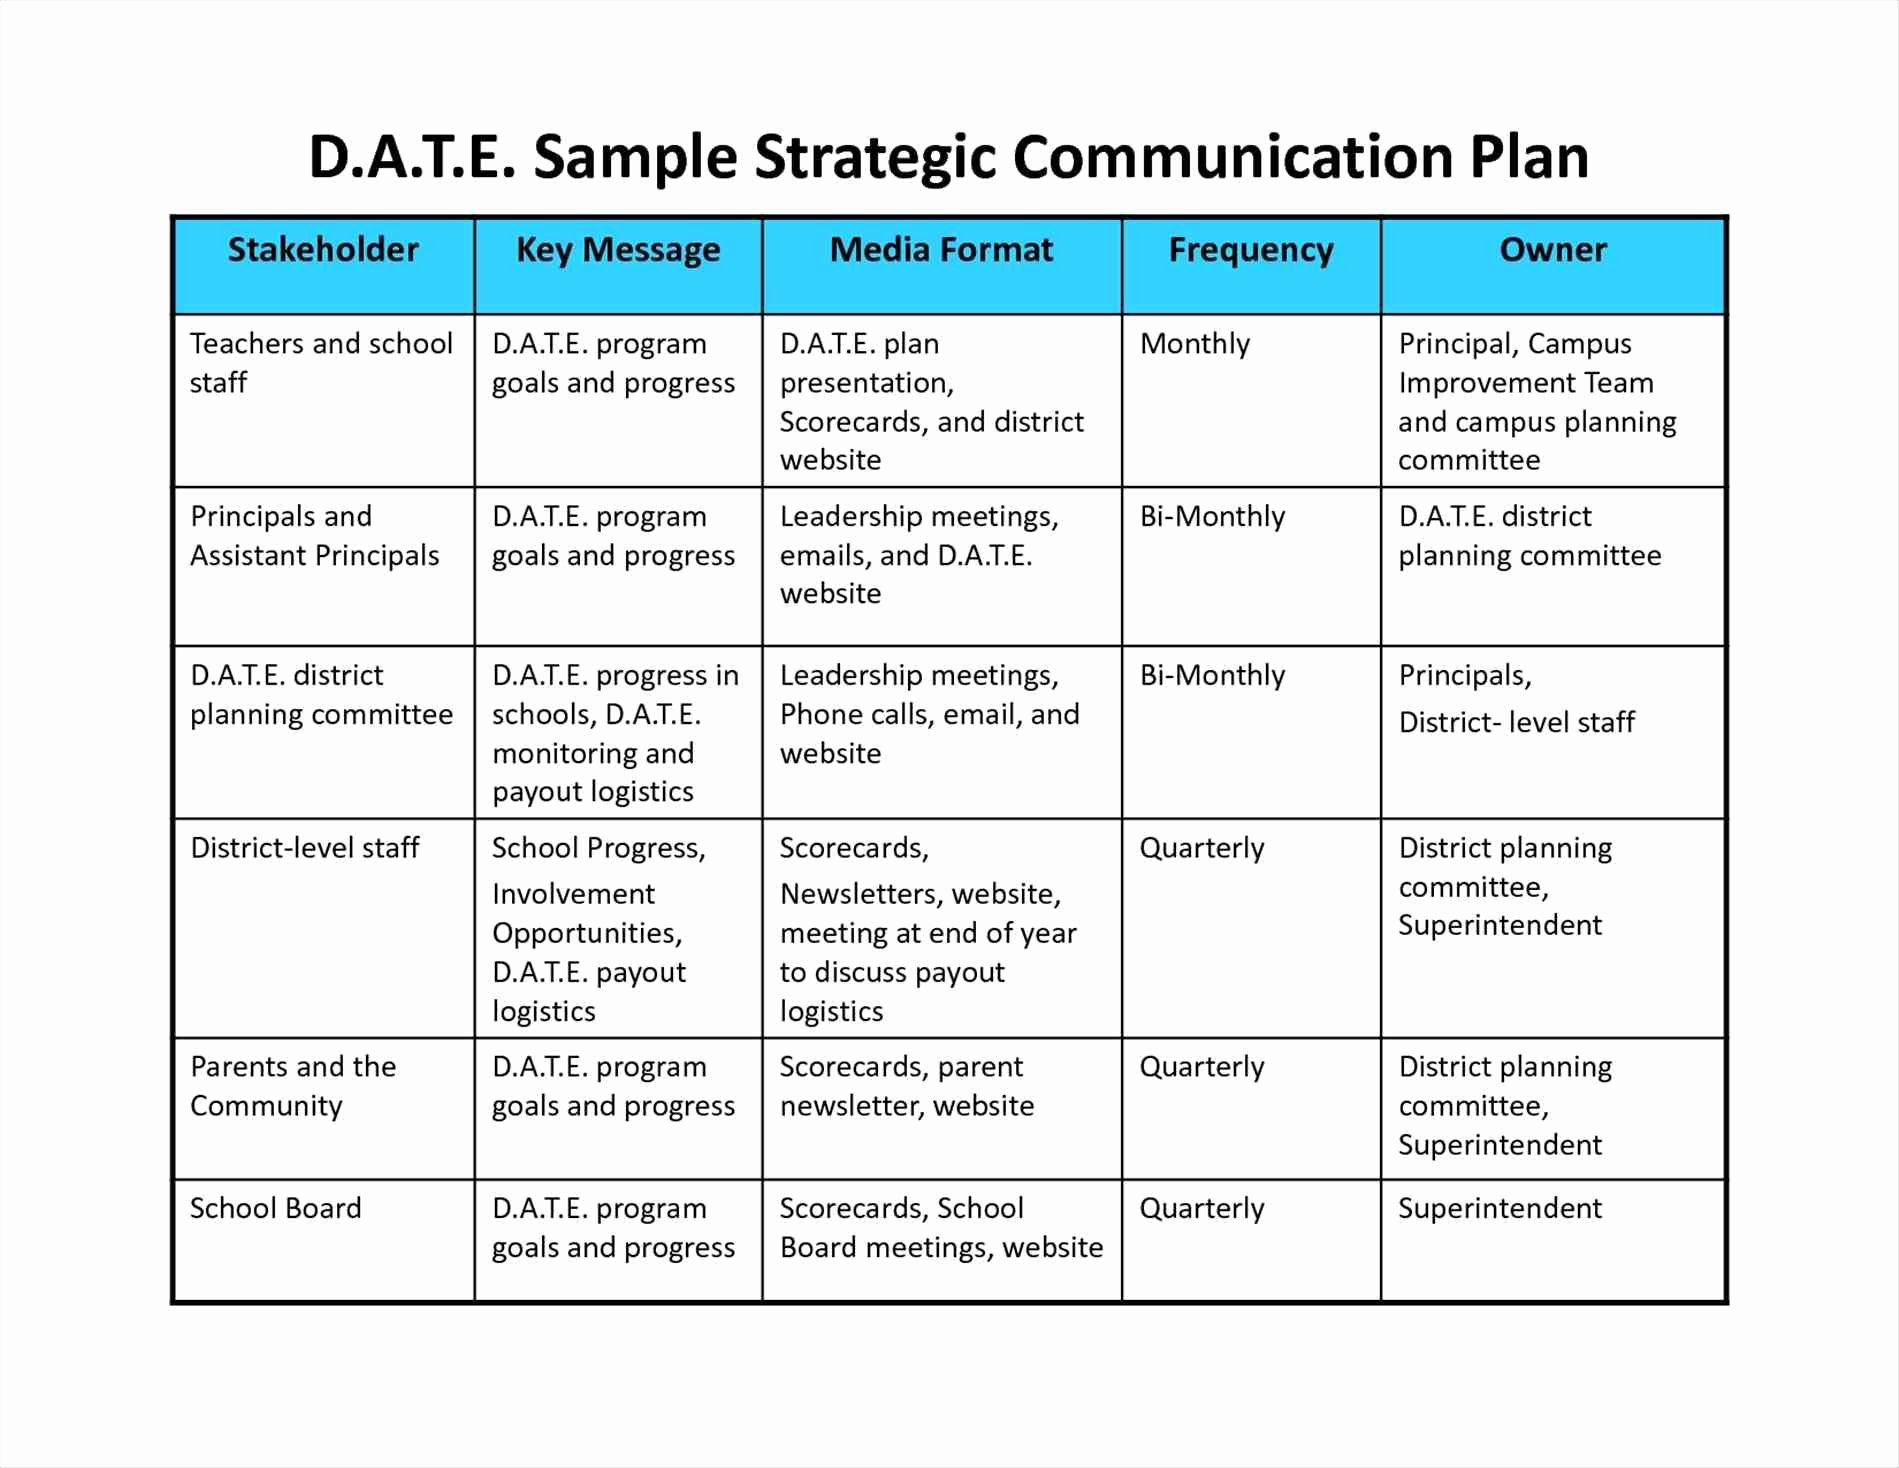 Communication Plan Template Free Beautiful Pin by Luke at Illinoistech On Marketing & Munications